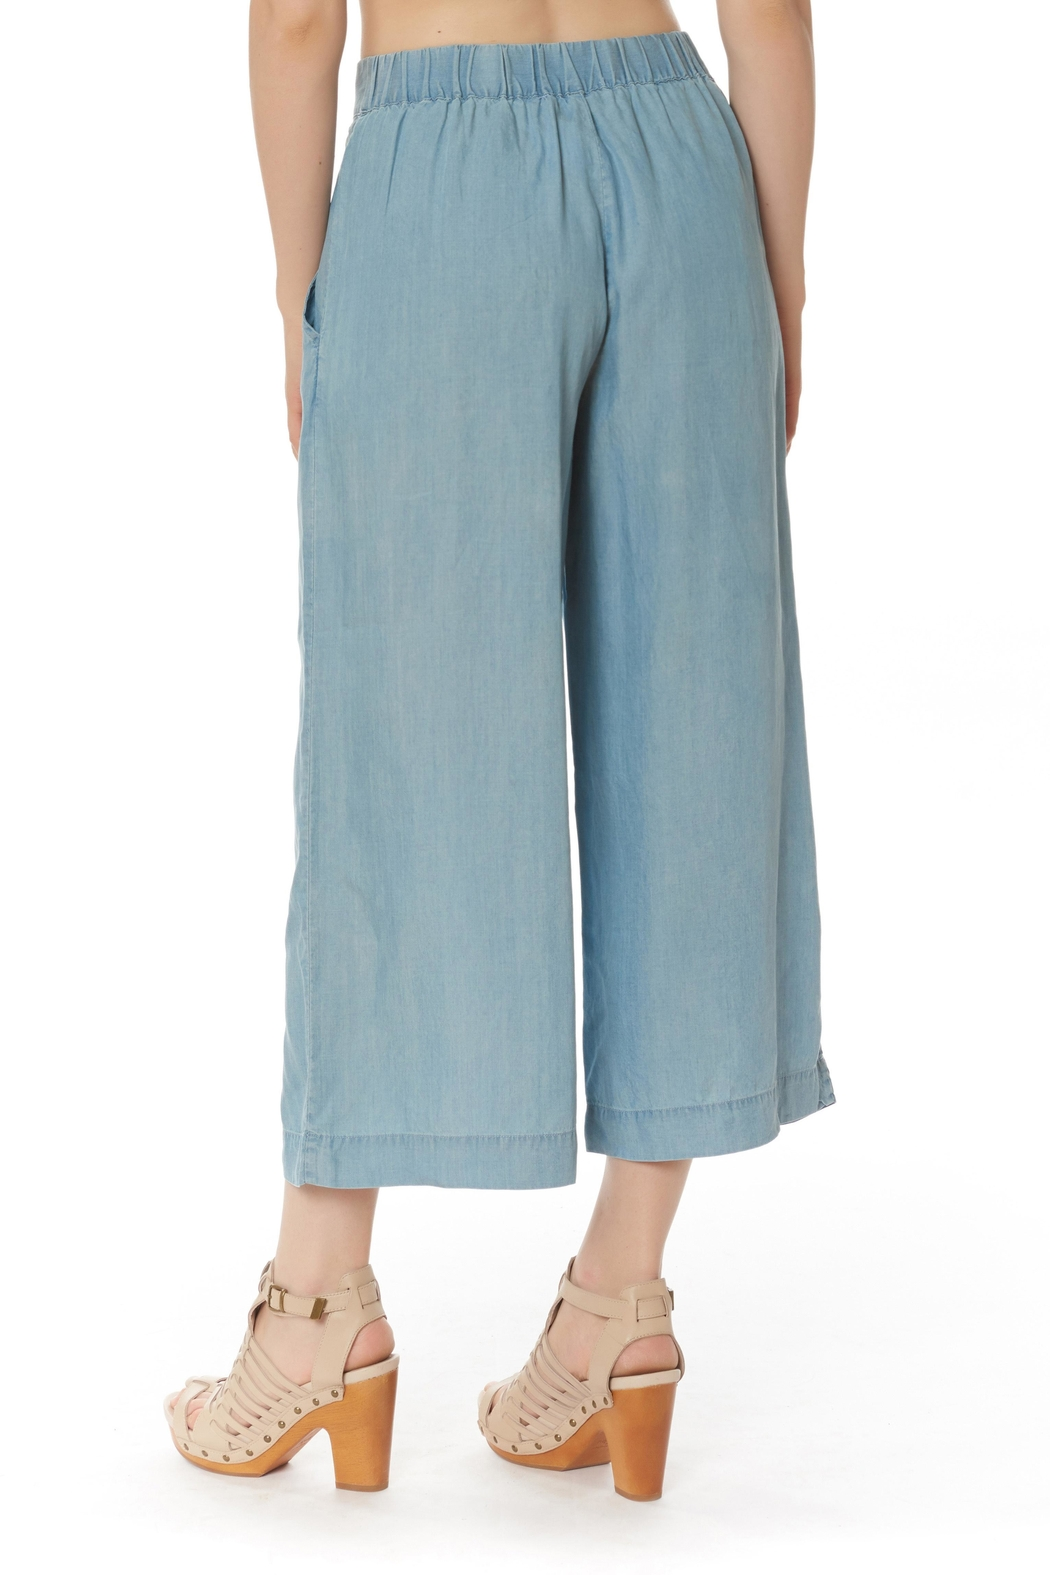 Do & Be Culotte Denim Pants - Front Full Image